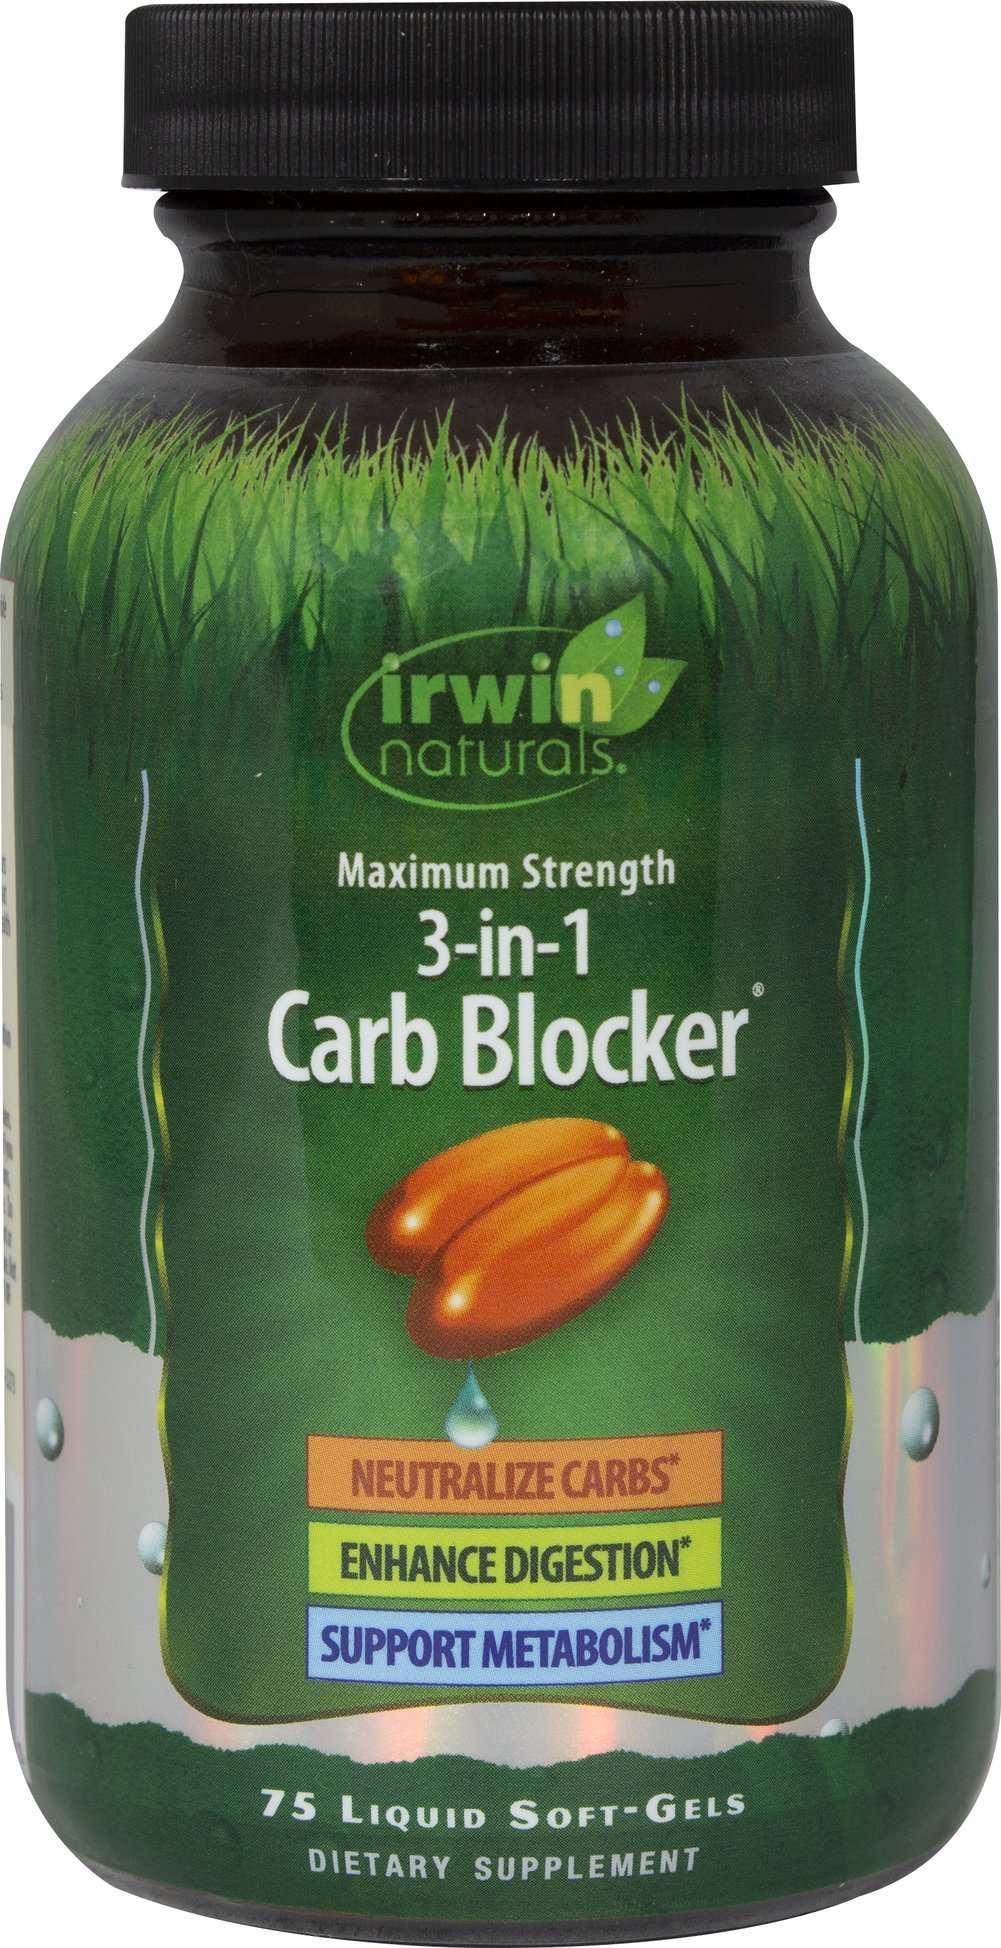 Maximum Strength 3-in-1 Carb Blocker by Irwin Naturals, Neutralize Carbohydrates and Support Metabolism, 75 Liquid Softgels by Irwin Naturals